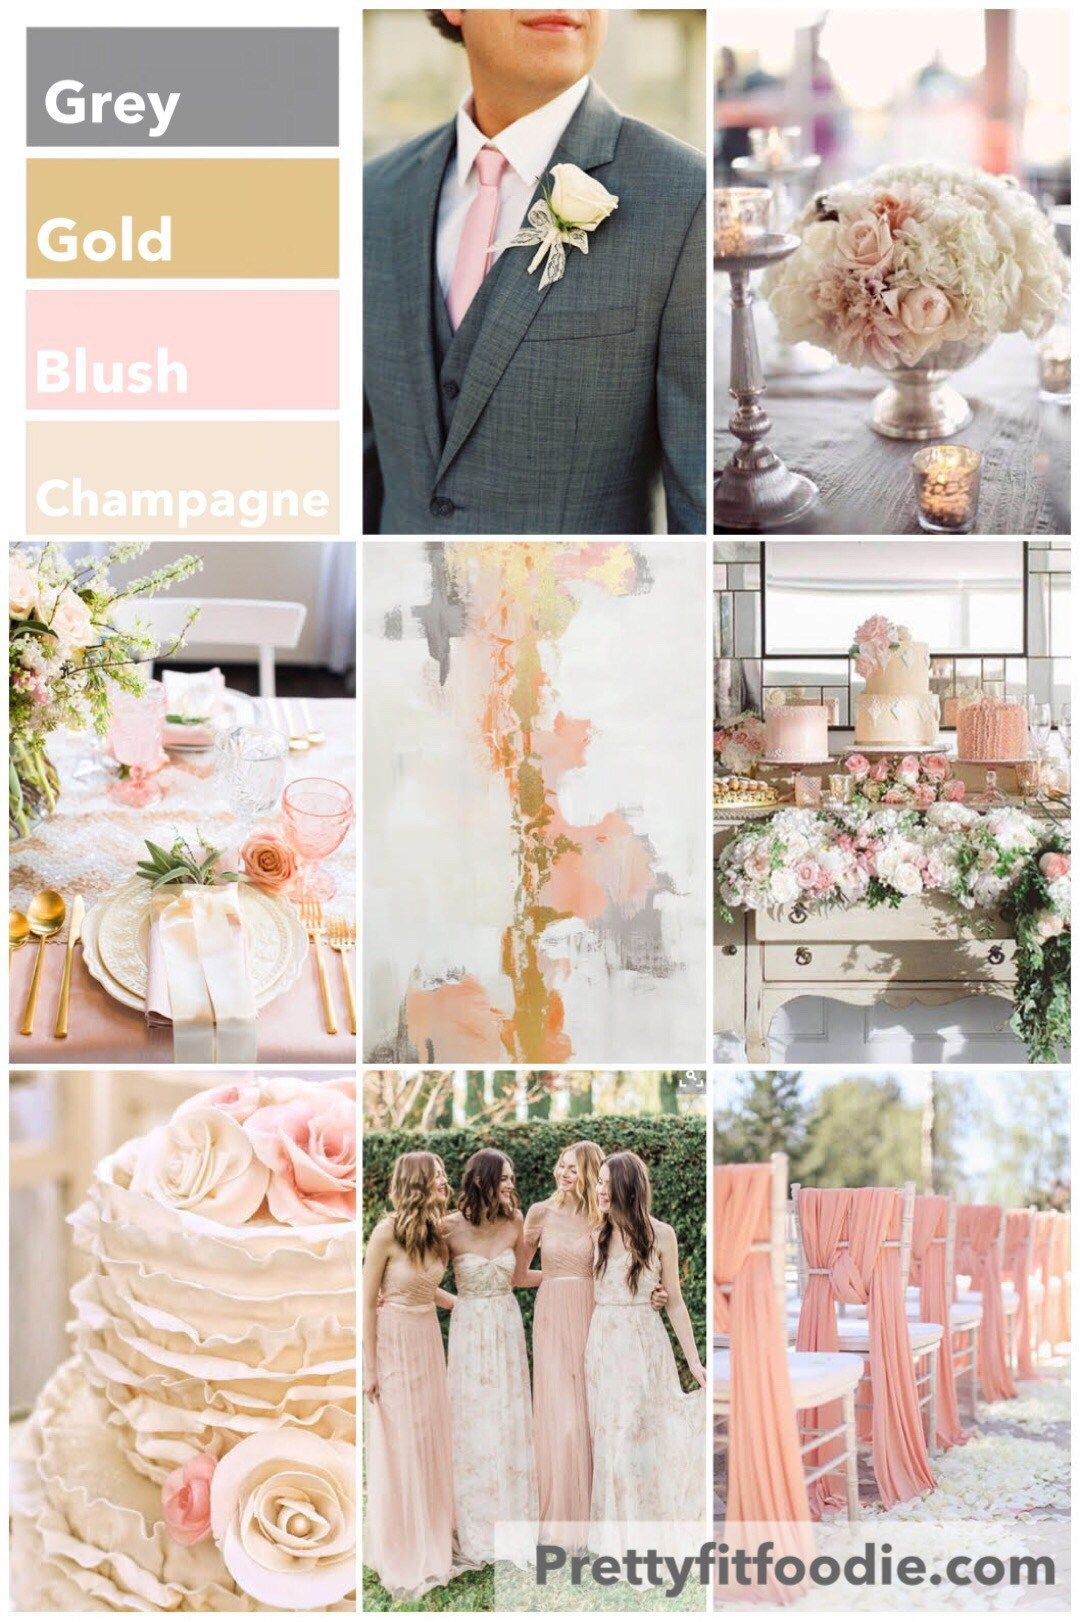 Wedding Colors Of Grey Gold Blush And Champagne Scheme